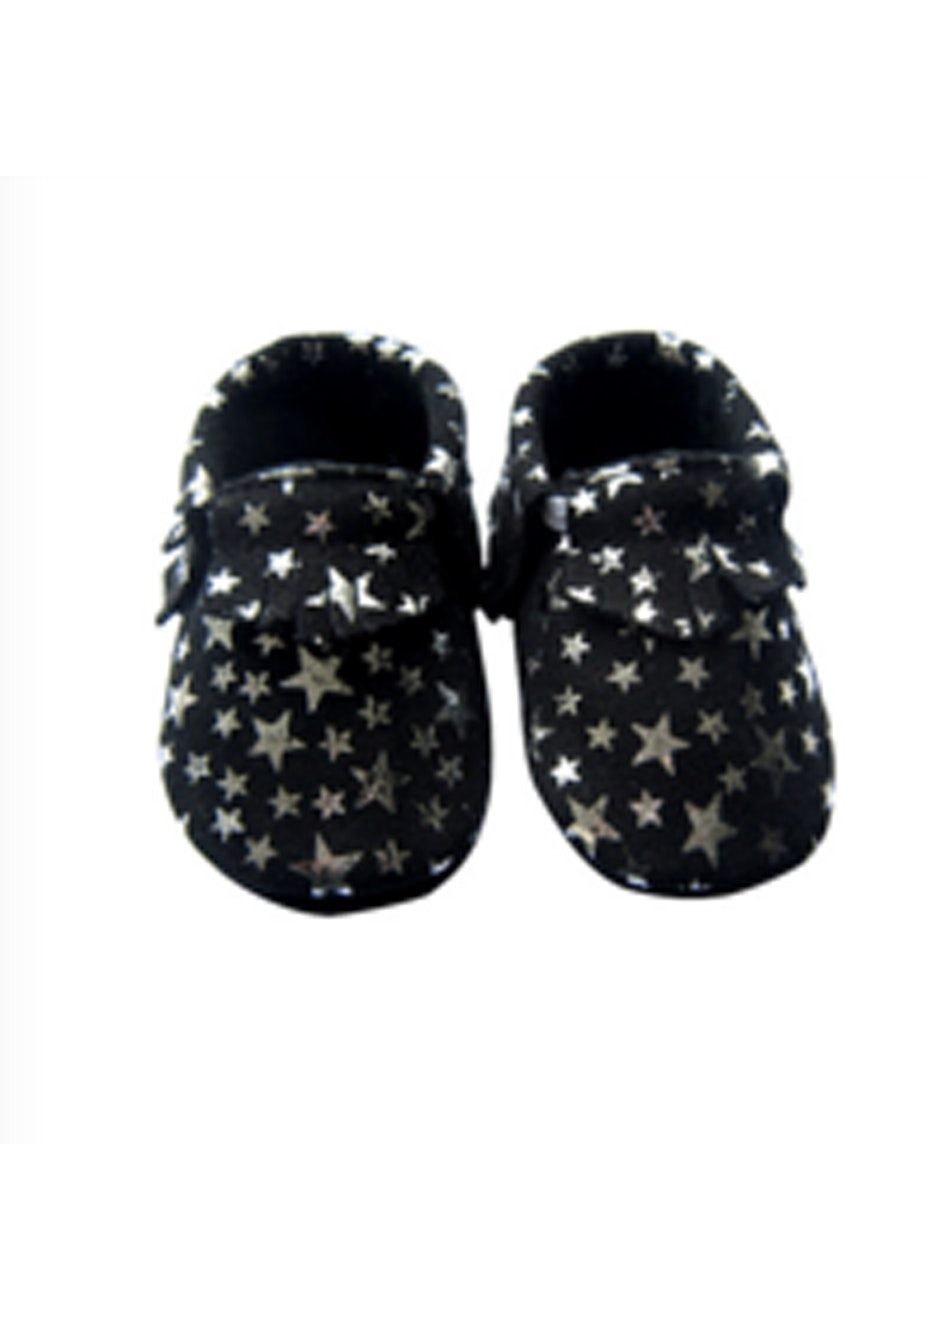 Baby  Leather Shoes - Black/Silver Star